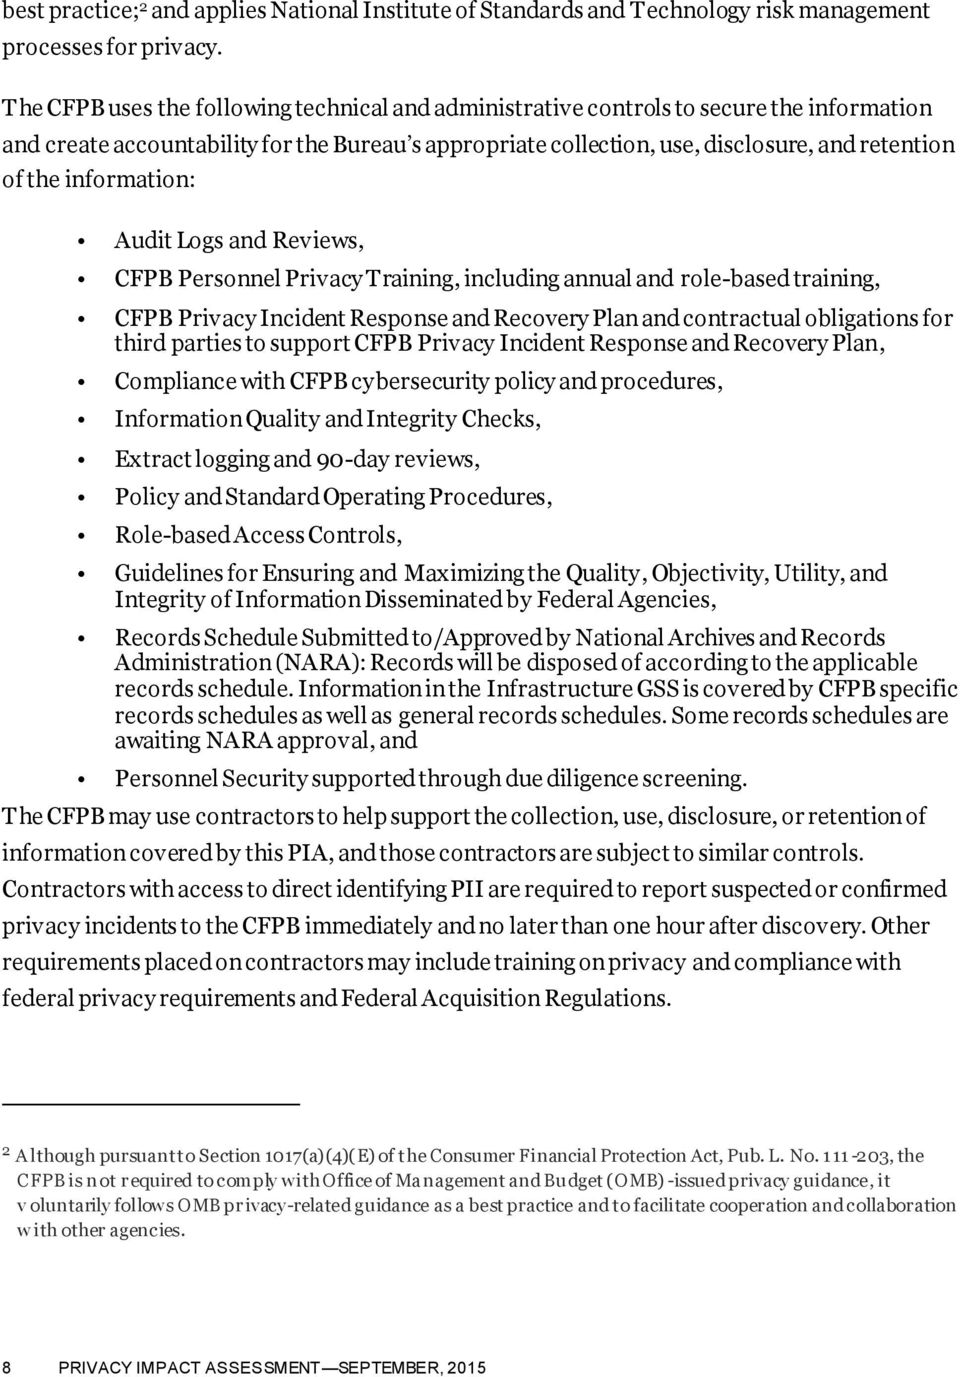 information: Audit Logs and Reviews, CFPB Personnel Privacy Training, including annual and role-based training, CFPB Privacy Incident Response and Recovery Plan and contractual obligations for third